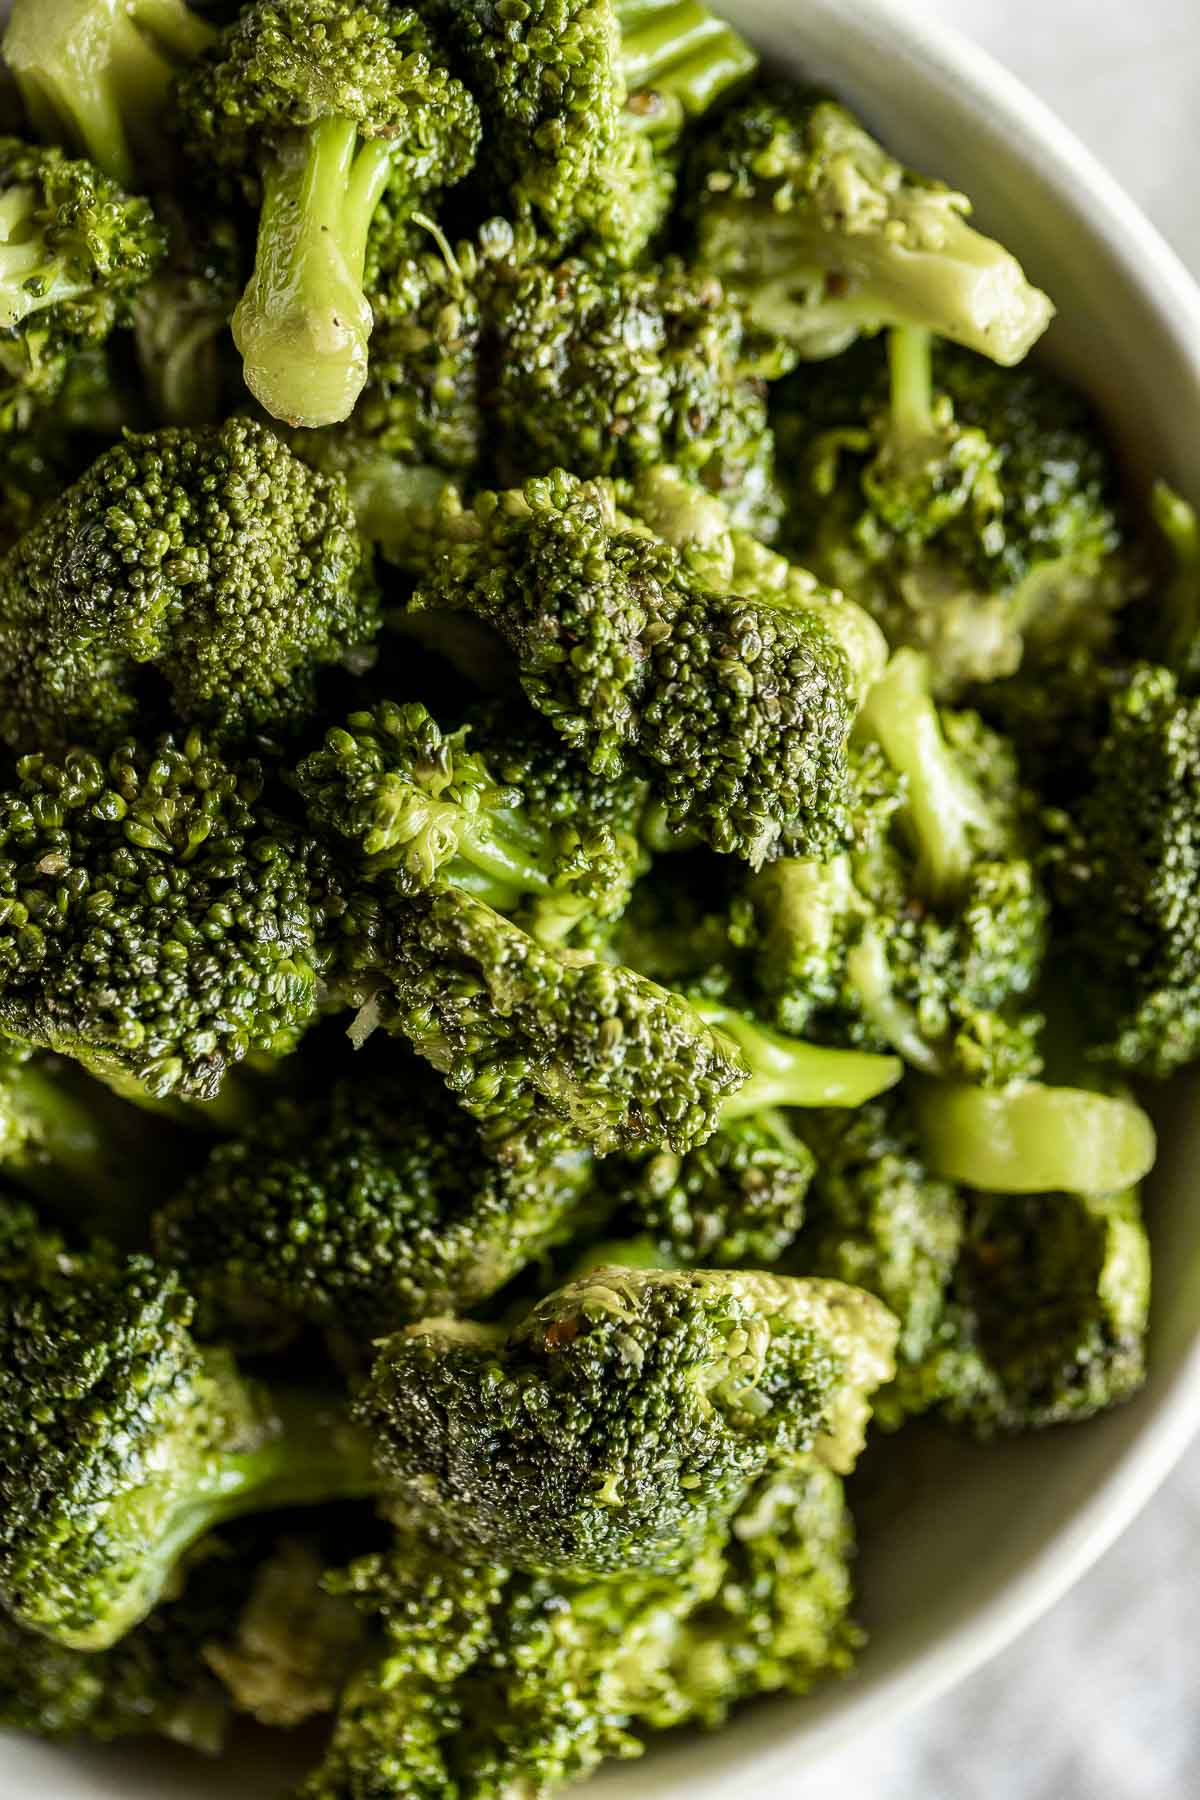 Up close of sous vide broccoli florets in a whole.